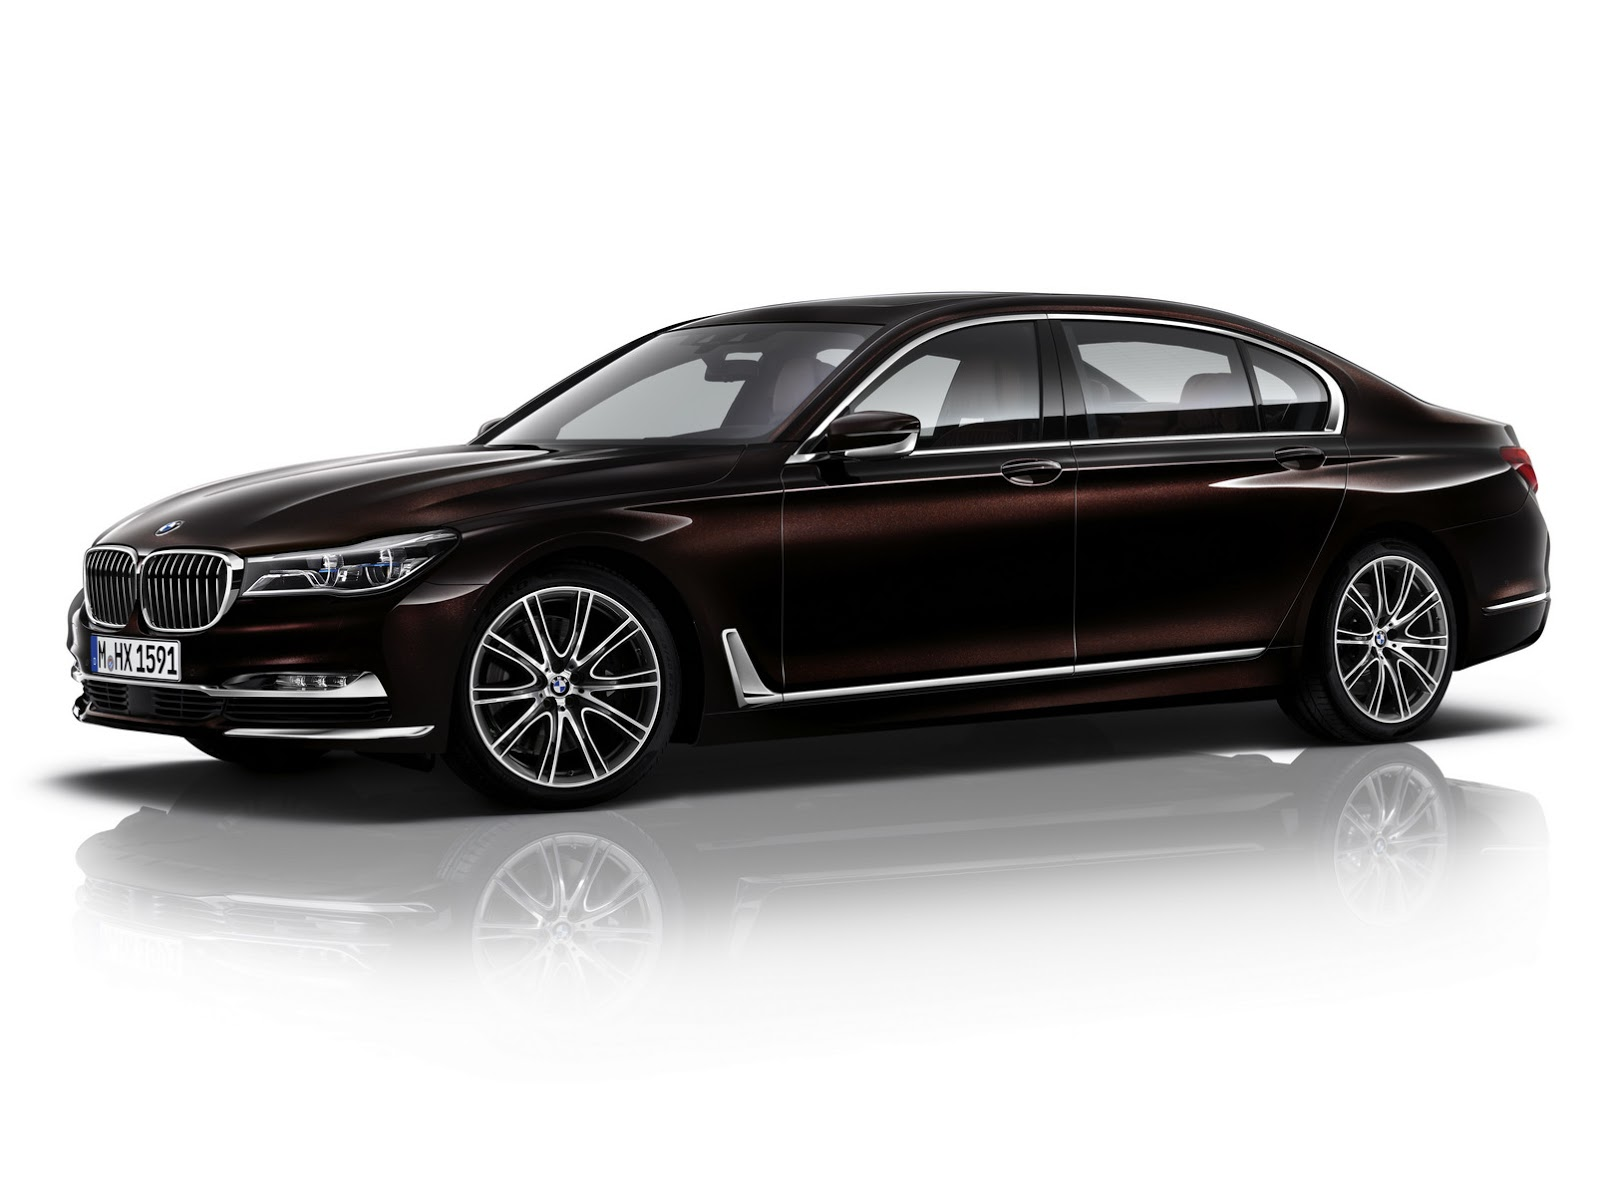 the all new 2016 bmw 7 series in 169 photos and full details. Black Bedroom Furniture Sets. Home Design Ideas